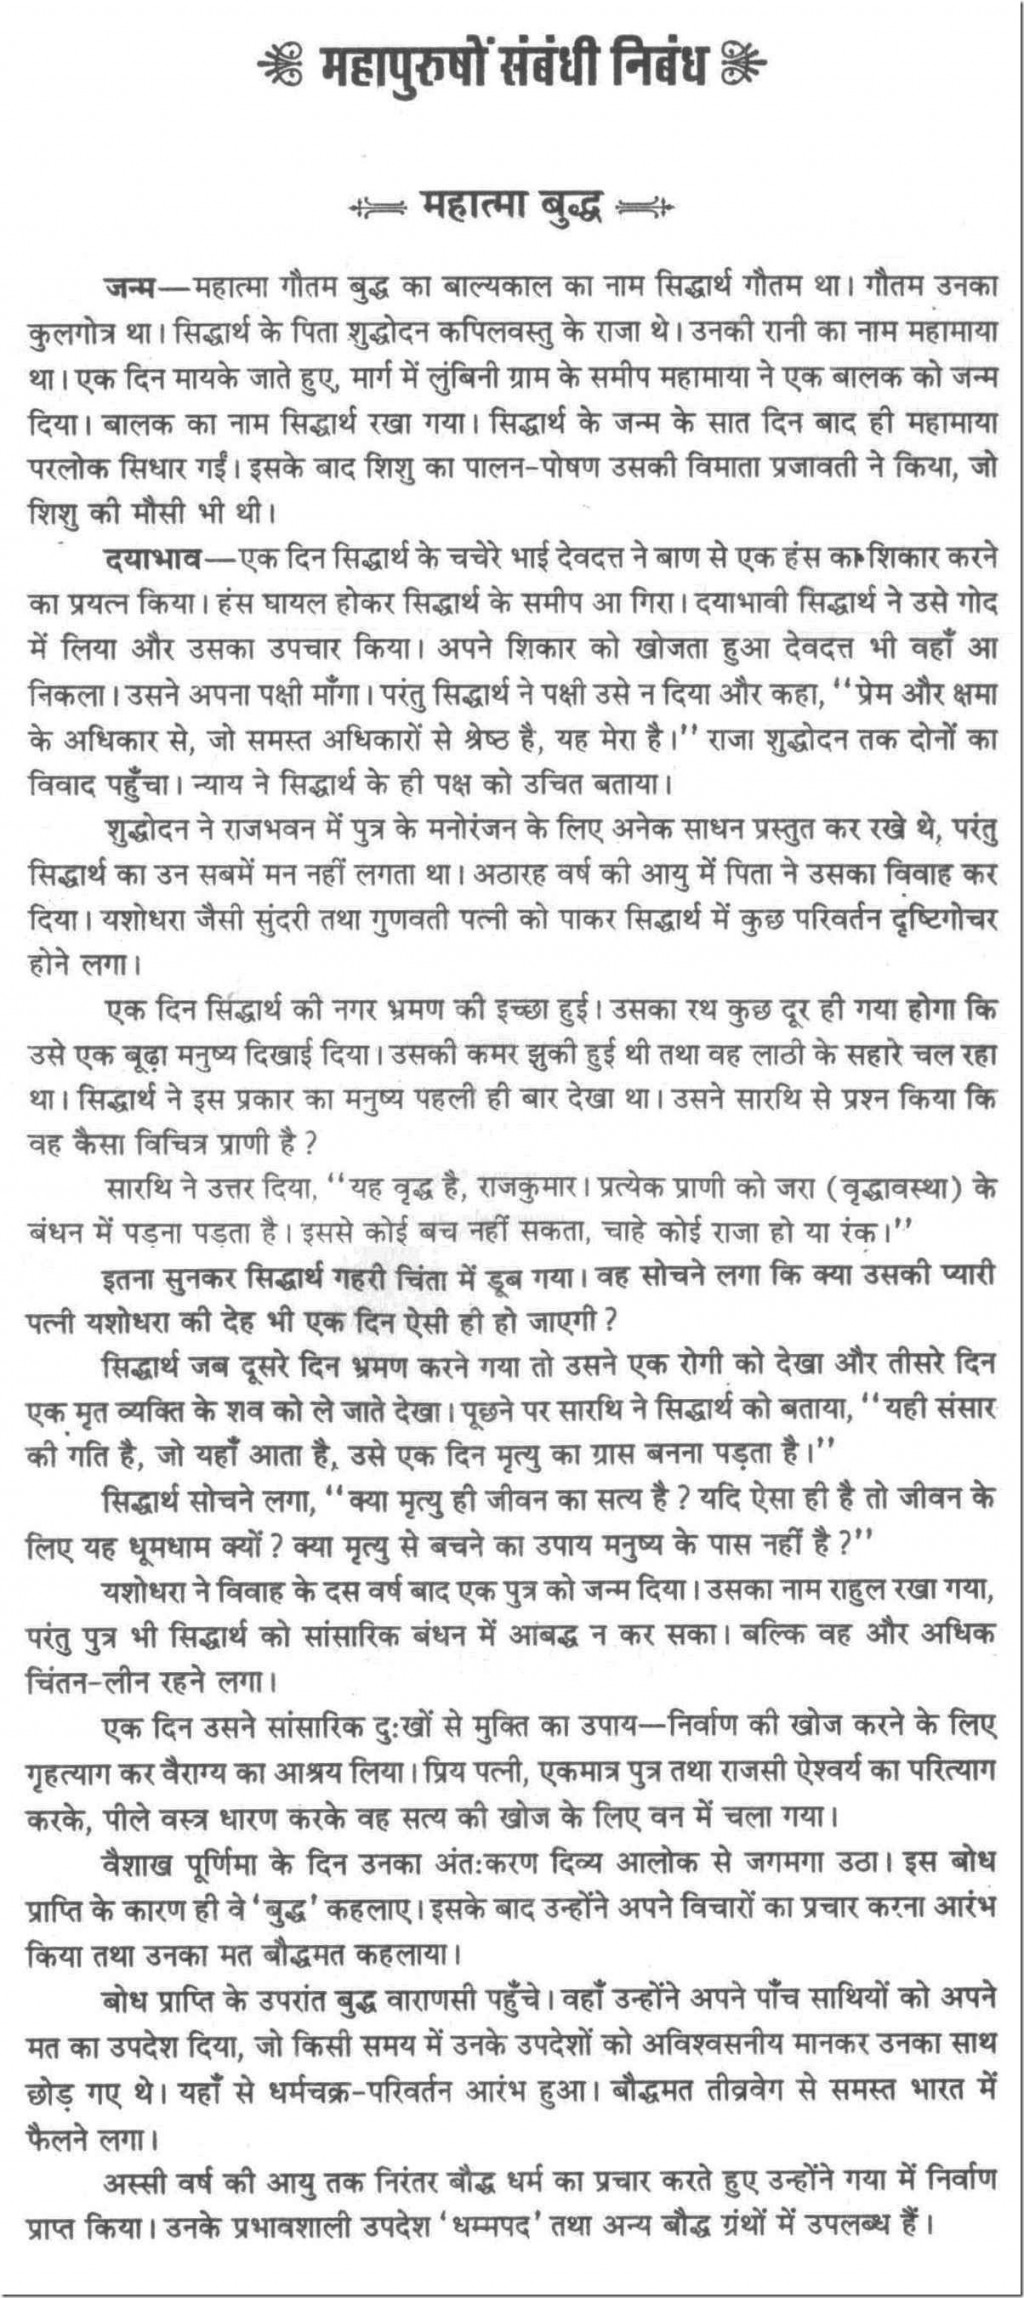 005 Essay Example Hinduism Surprising Questions Hindu Muslim Ekta In Hindi And Buddhism Introduction Large